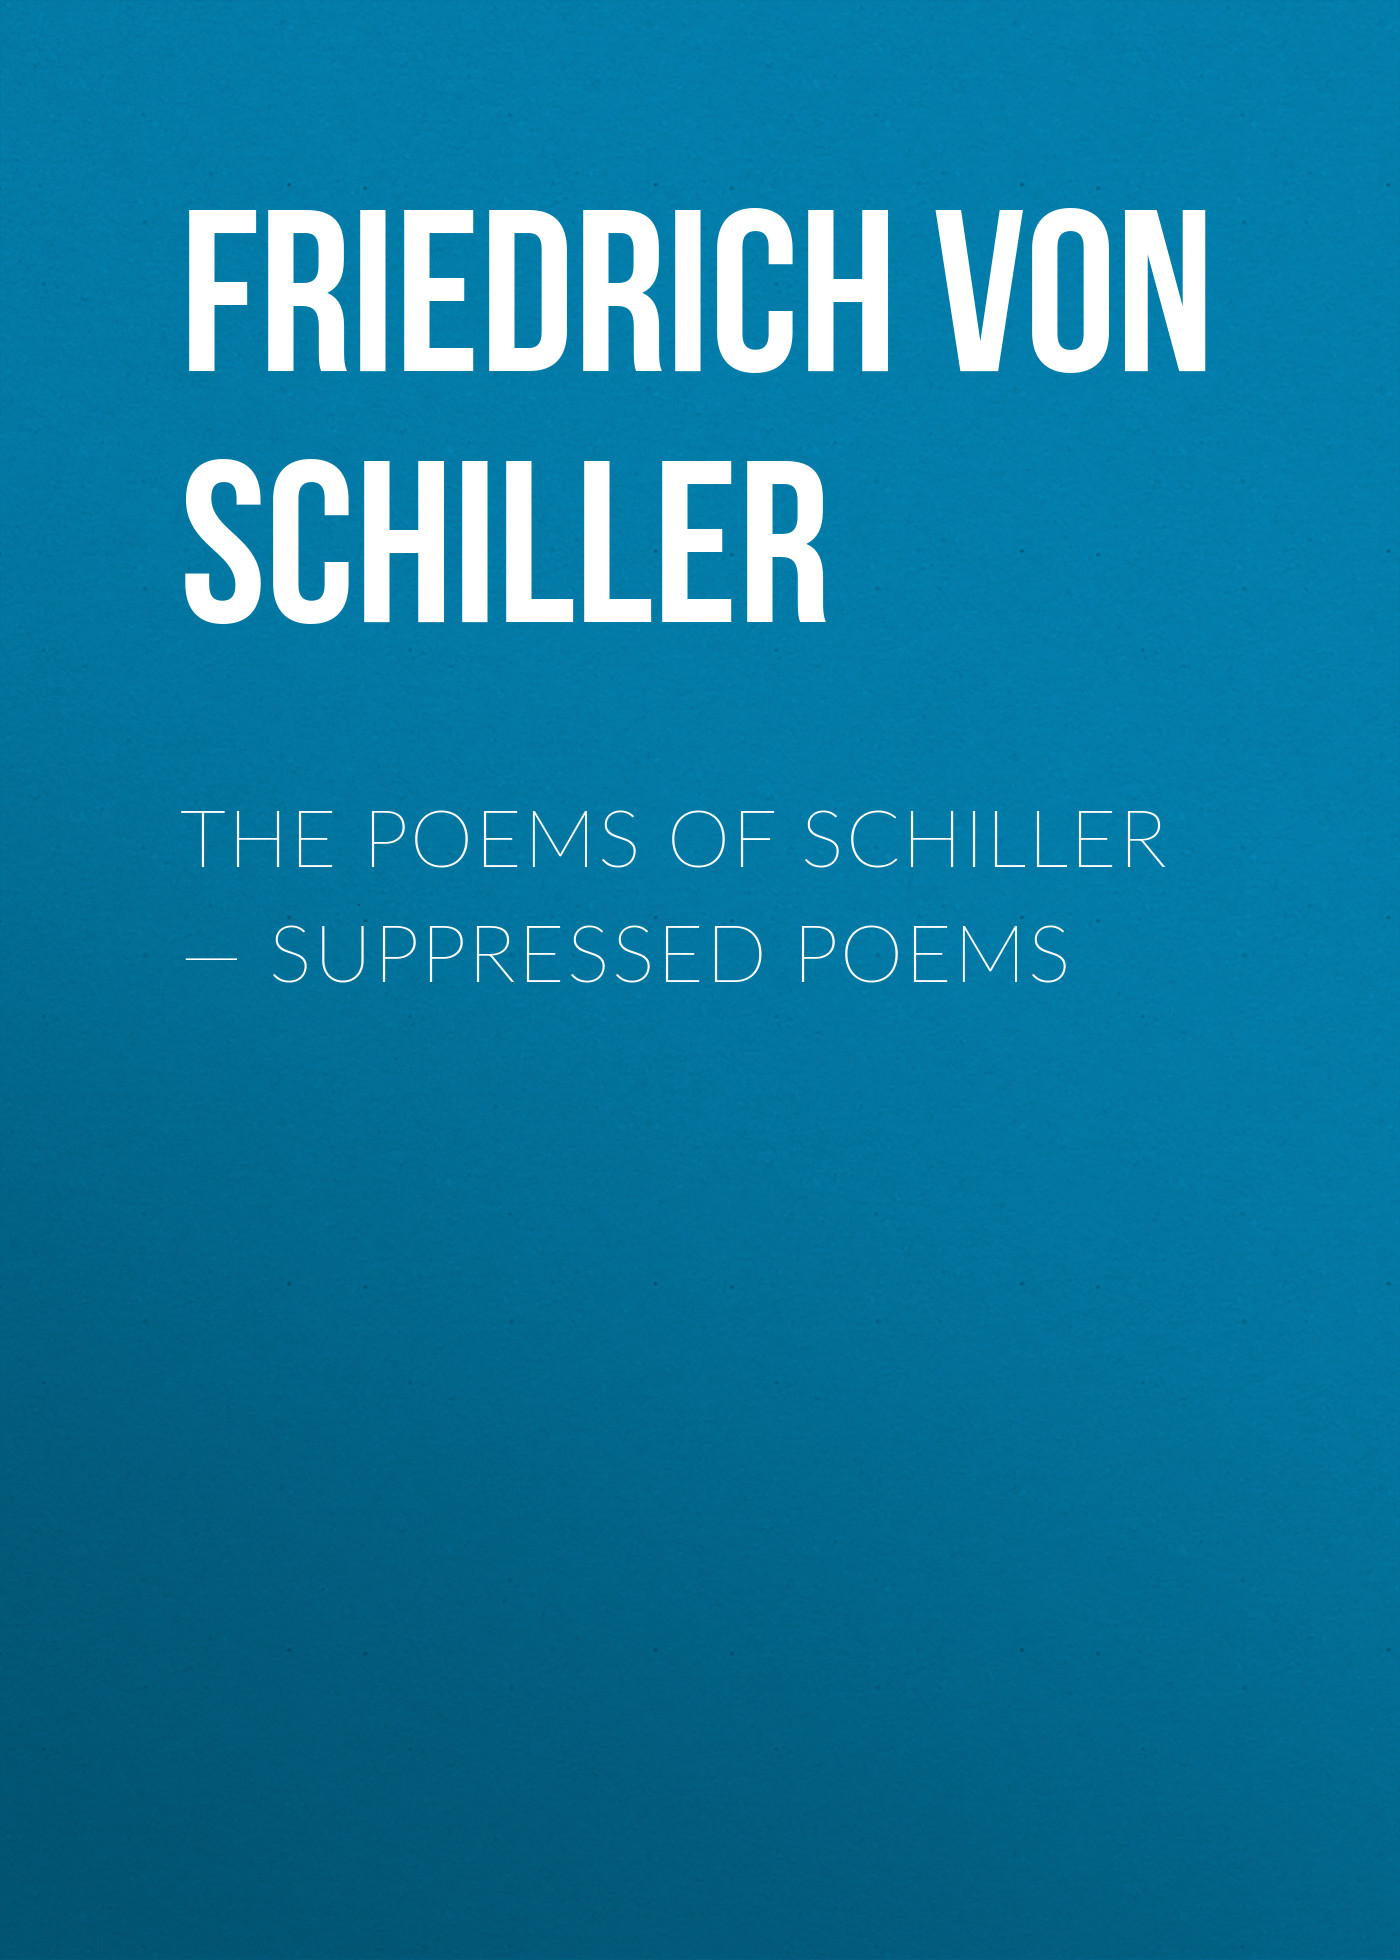 Friedrich von Schiller The Poems of Schiller — Suppressed poems egor rybakov phenomenon of christina selected poems